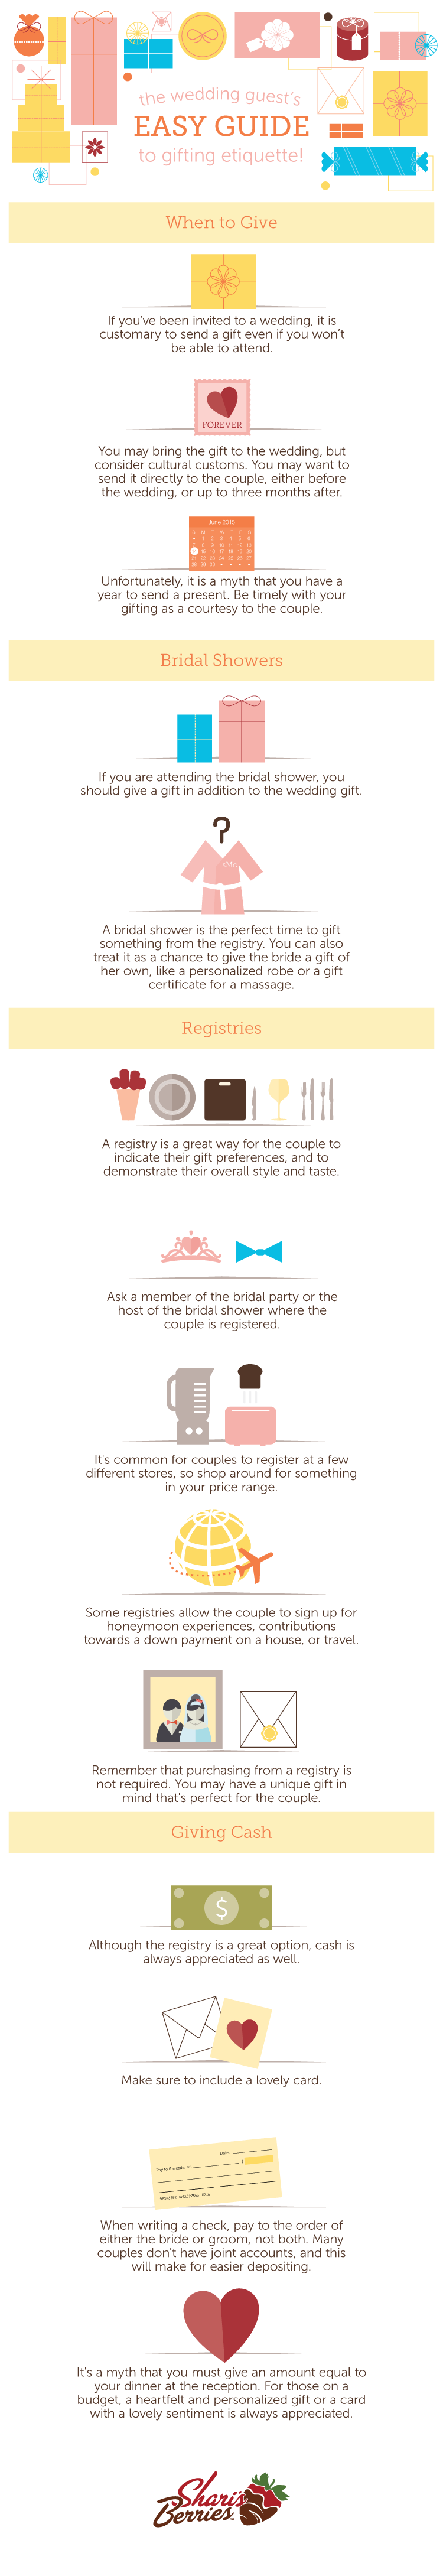 The Wedding Guest's Easy Guide To Gifting Etiquette! Infographic